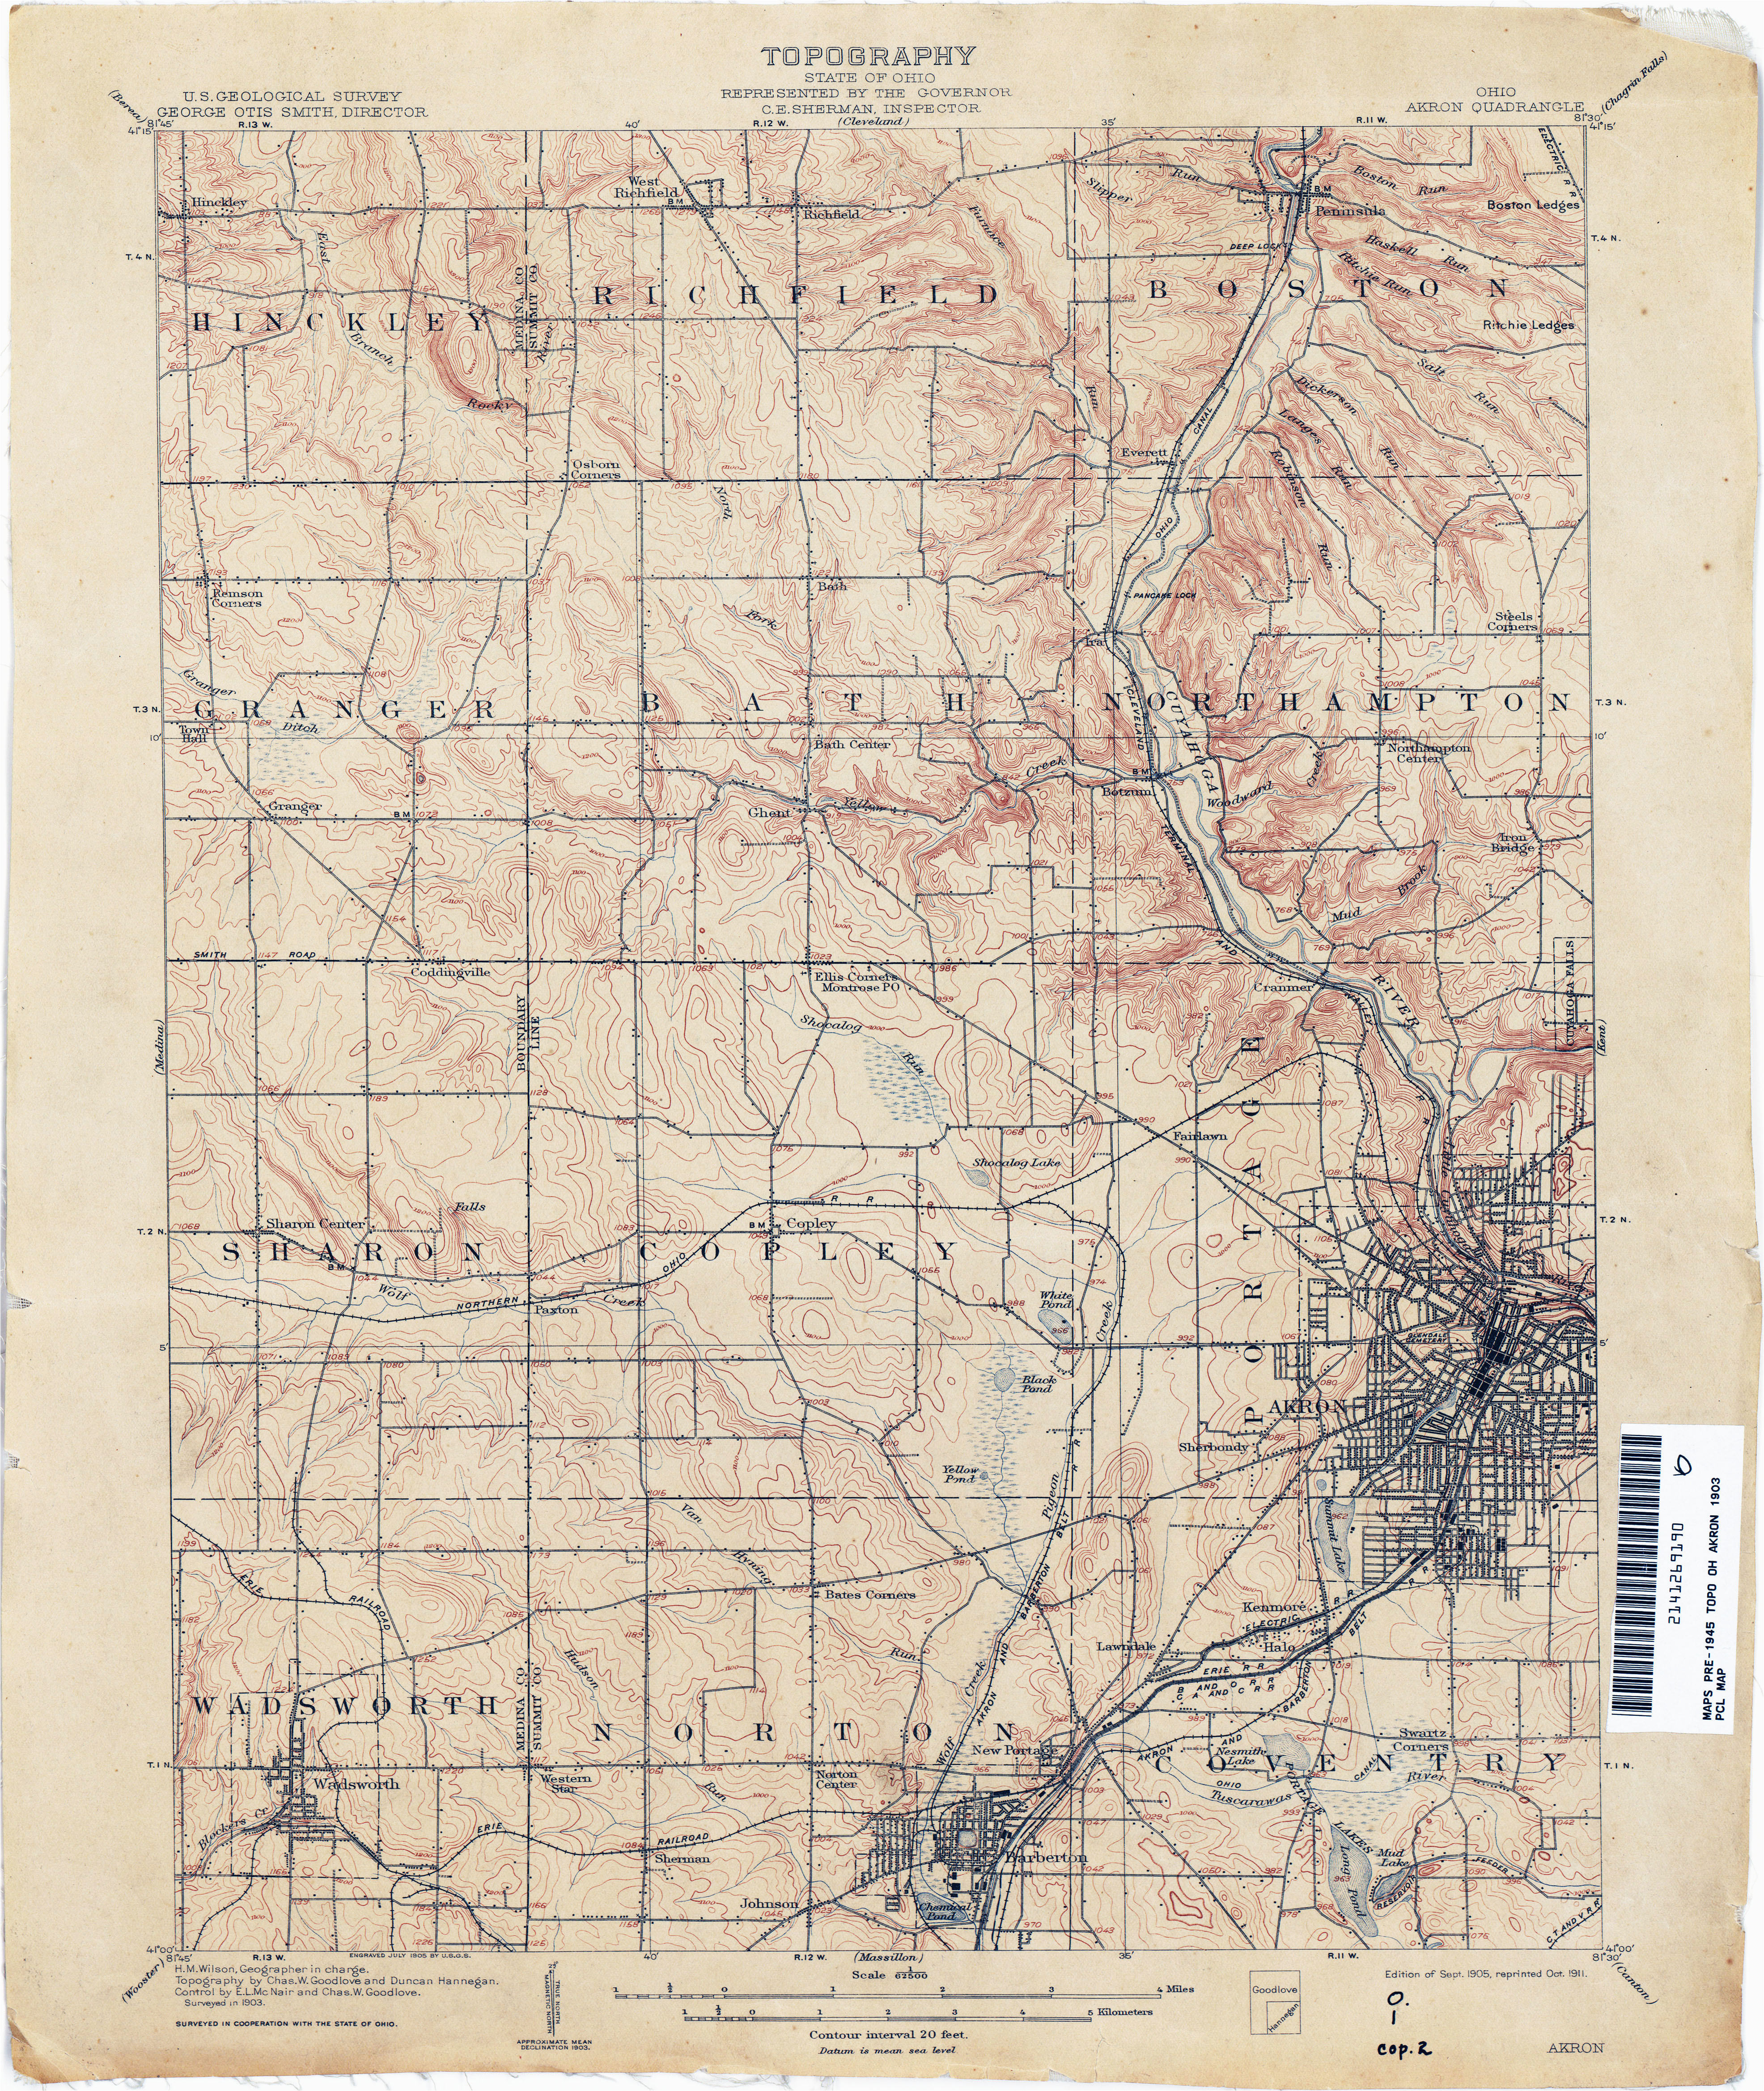 Springfield township Ohio Map Ohio Historical topographic Maps Perry Castaa Eda Map Collection